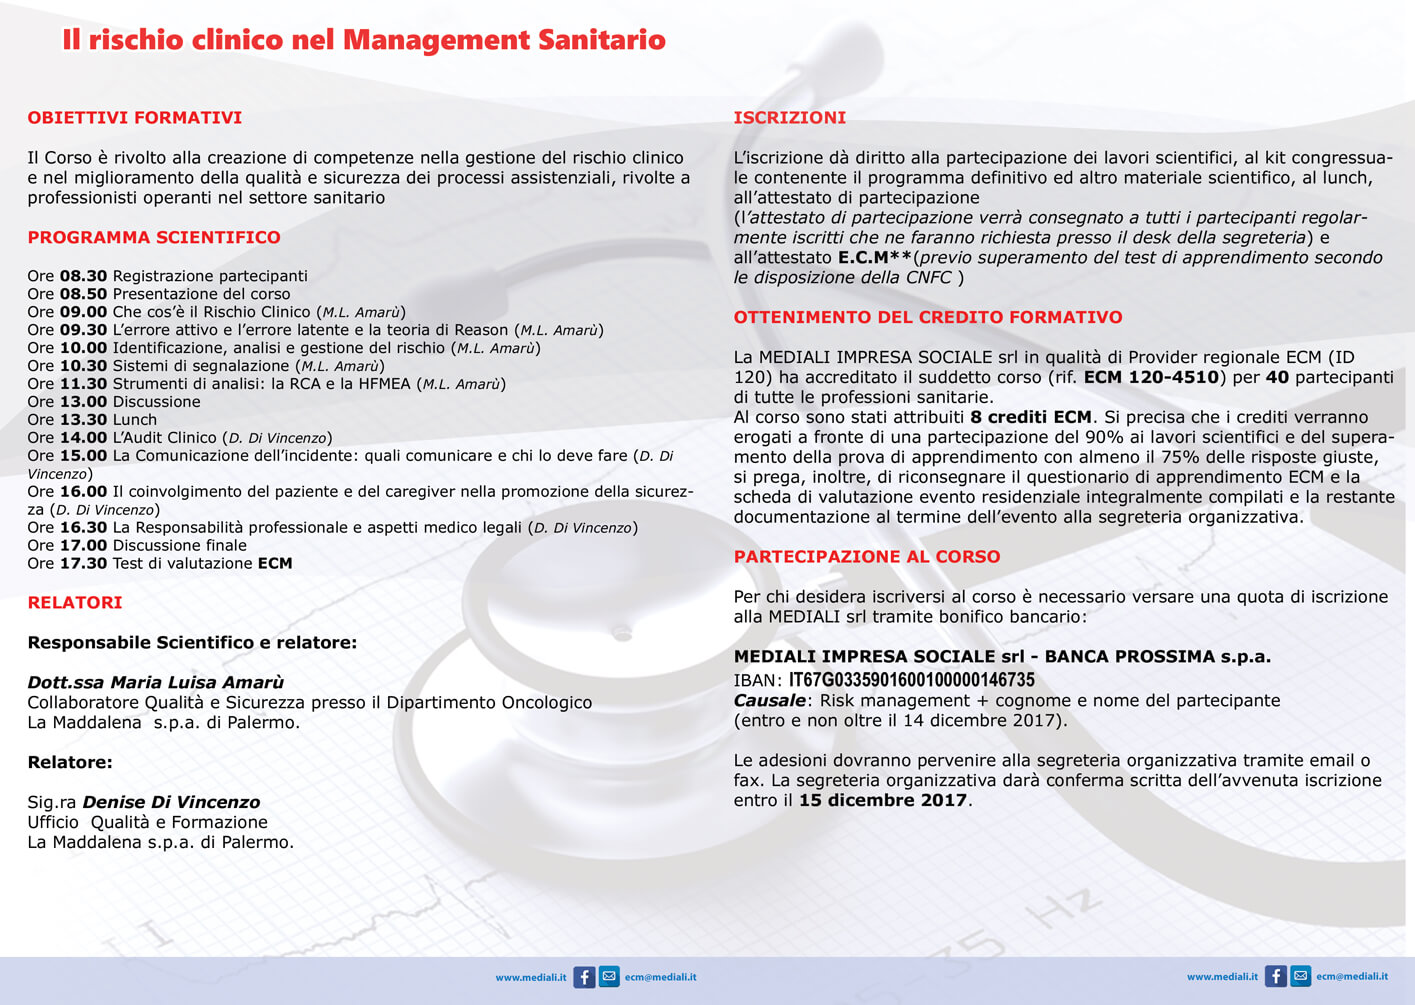 Brochure Il rischio clinico nel management Sanitario - Mediali.it